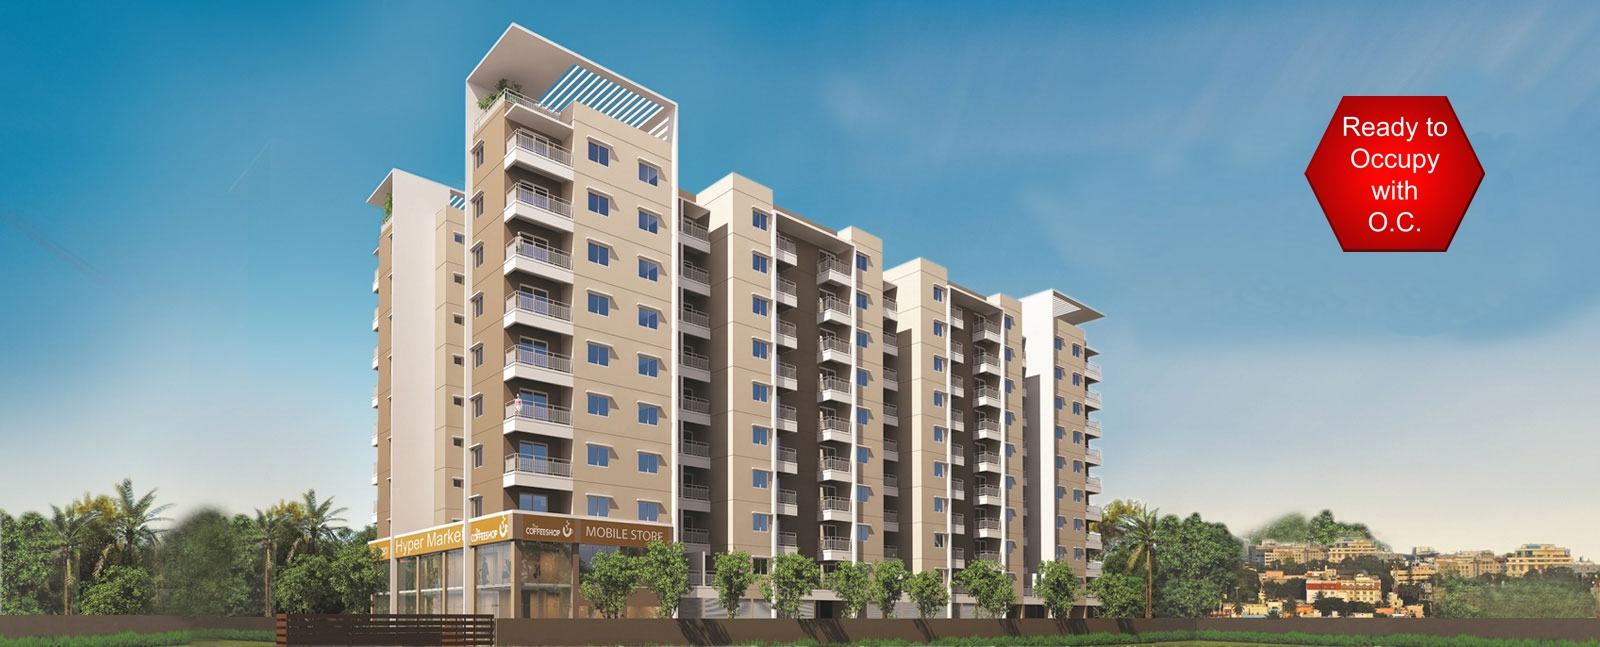 Ready To Move Apartments In Chandapura